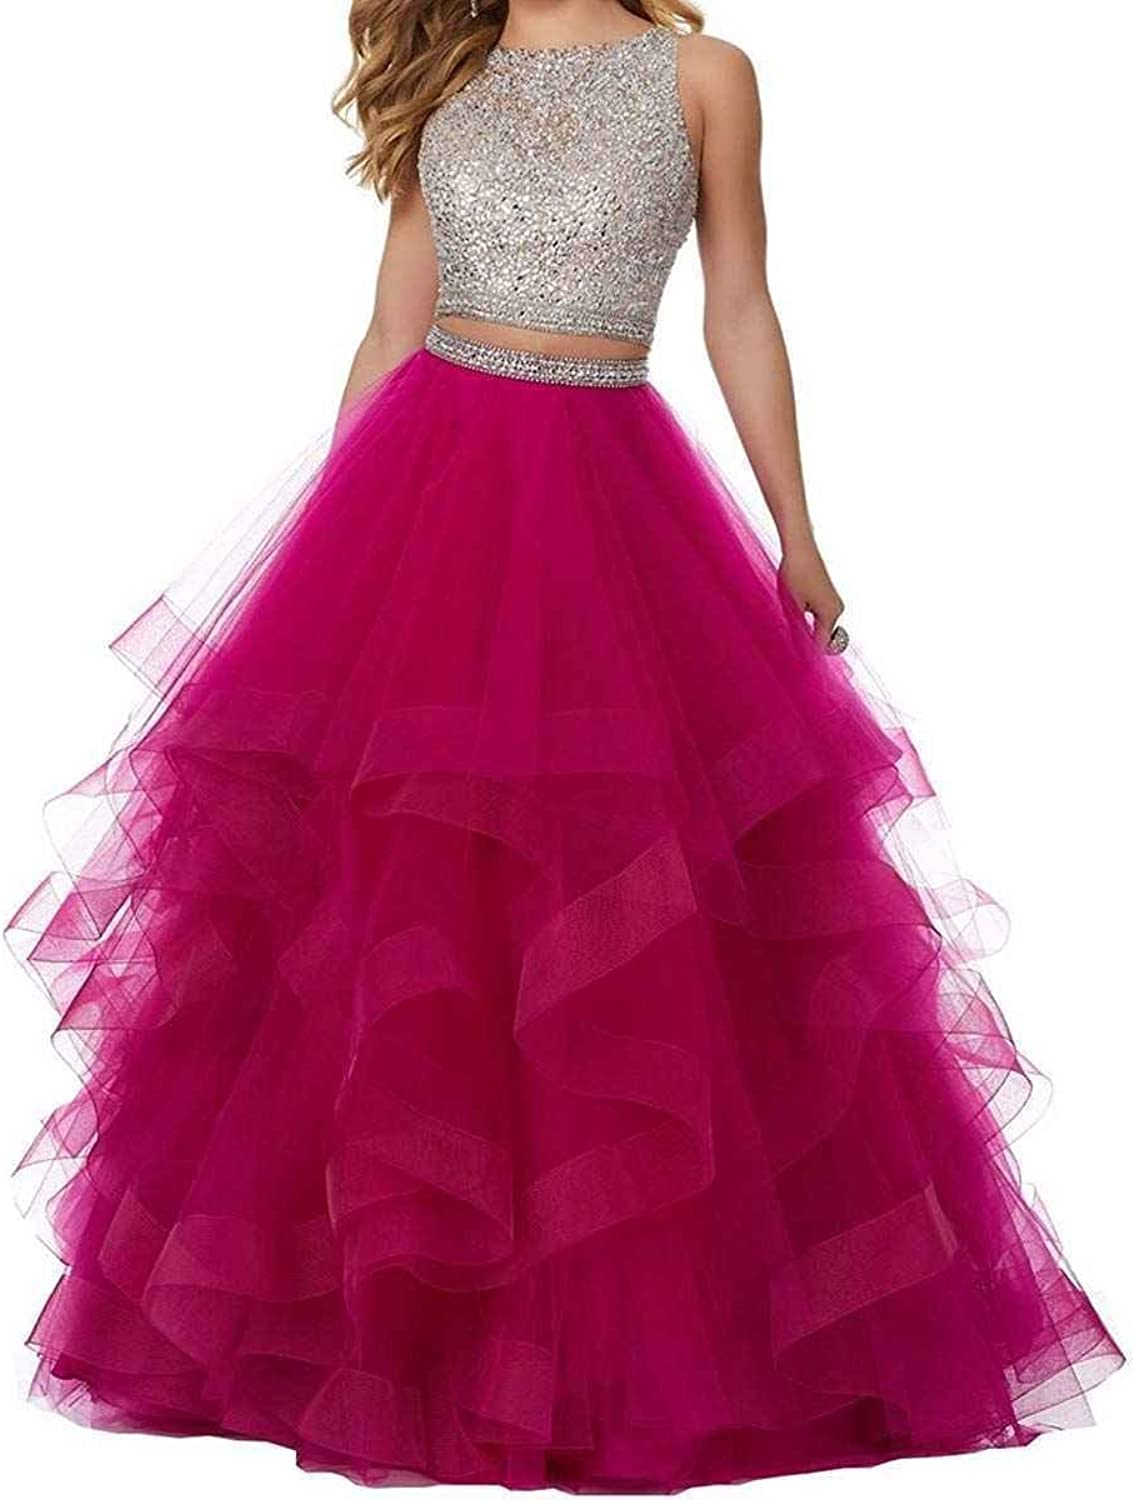 LL Bridal Women Sexy Beaded Two Pieces Prom Homecoming Dresses 2018 Long Tulle Formal Evening Ball Gowns A0020